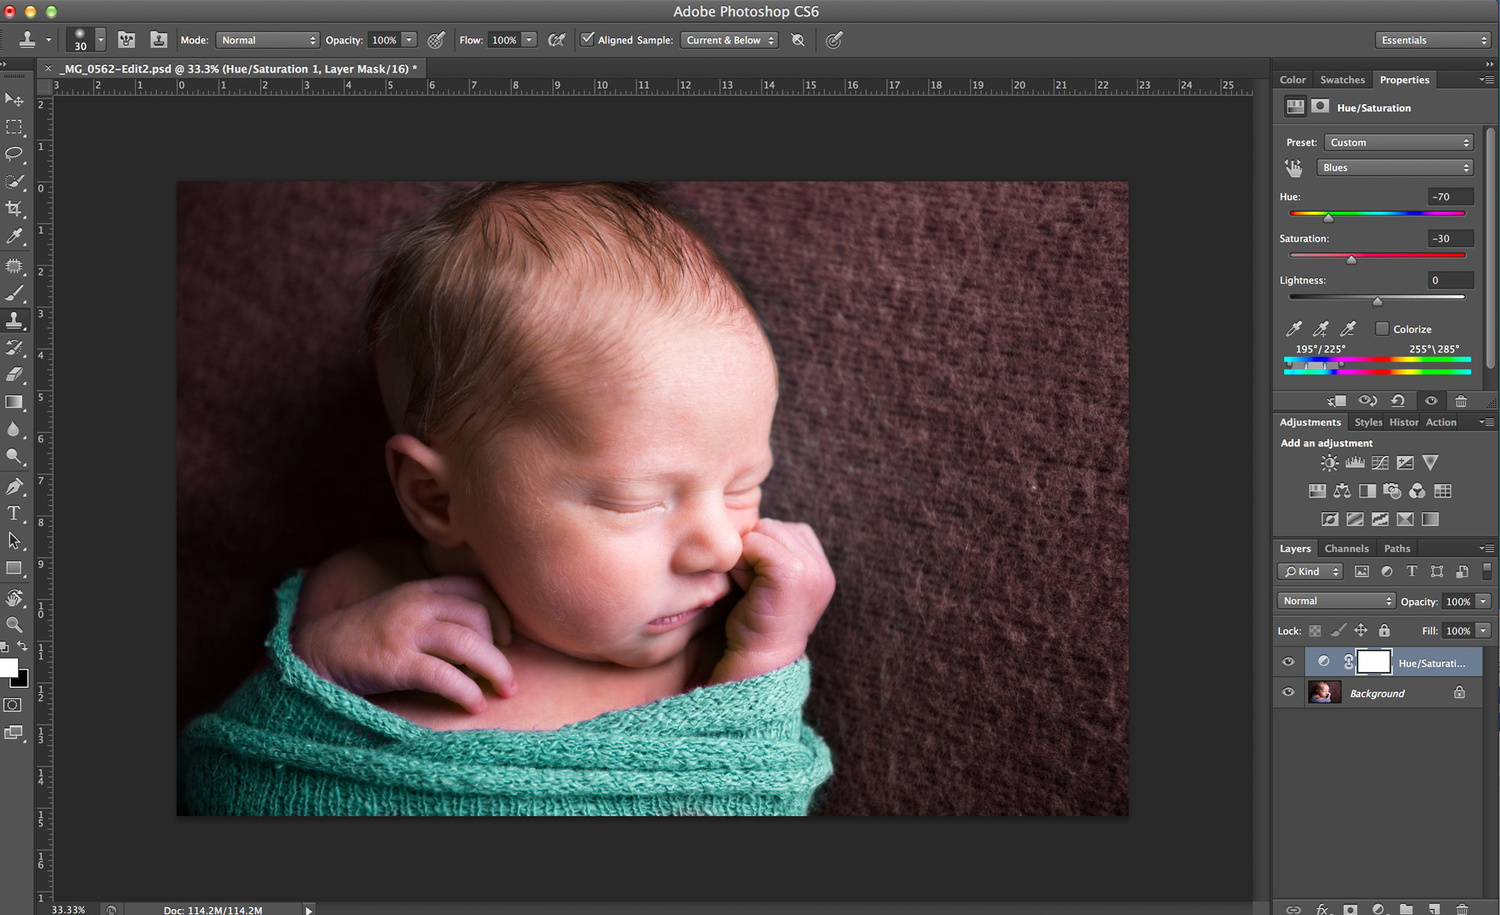 newborn sleeping in a teal wrap